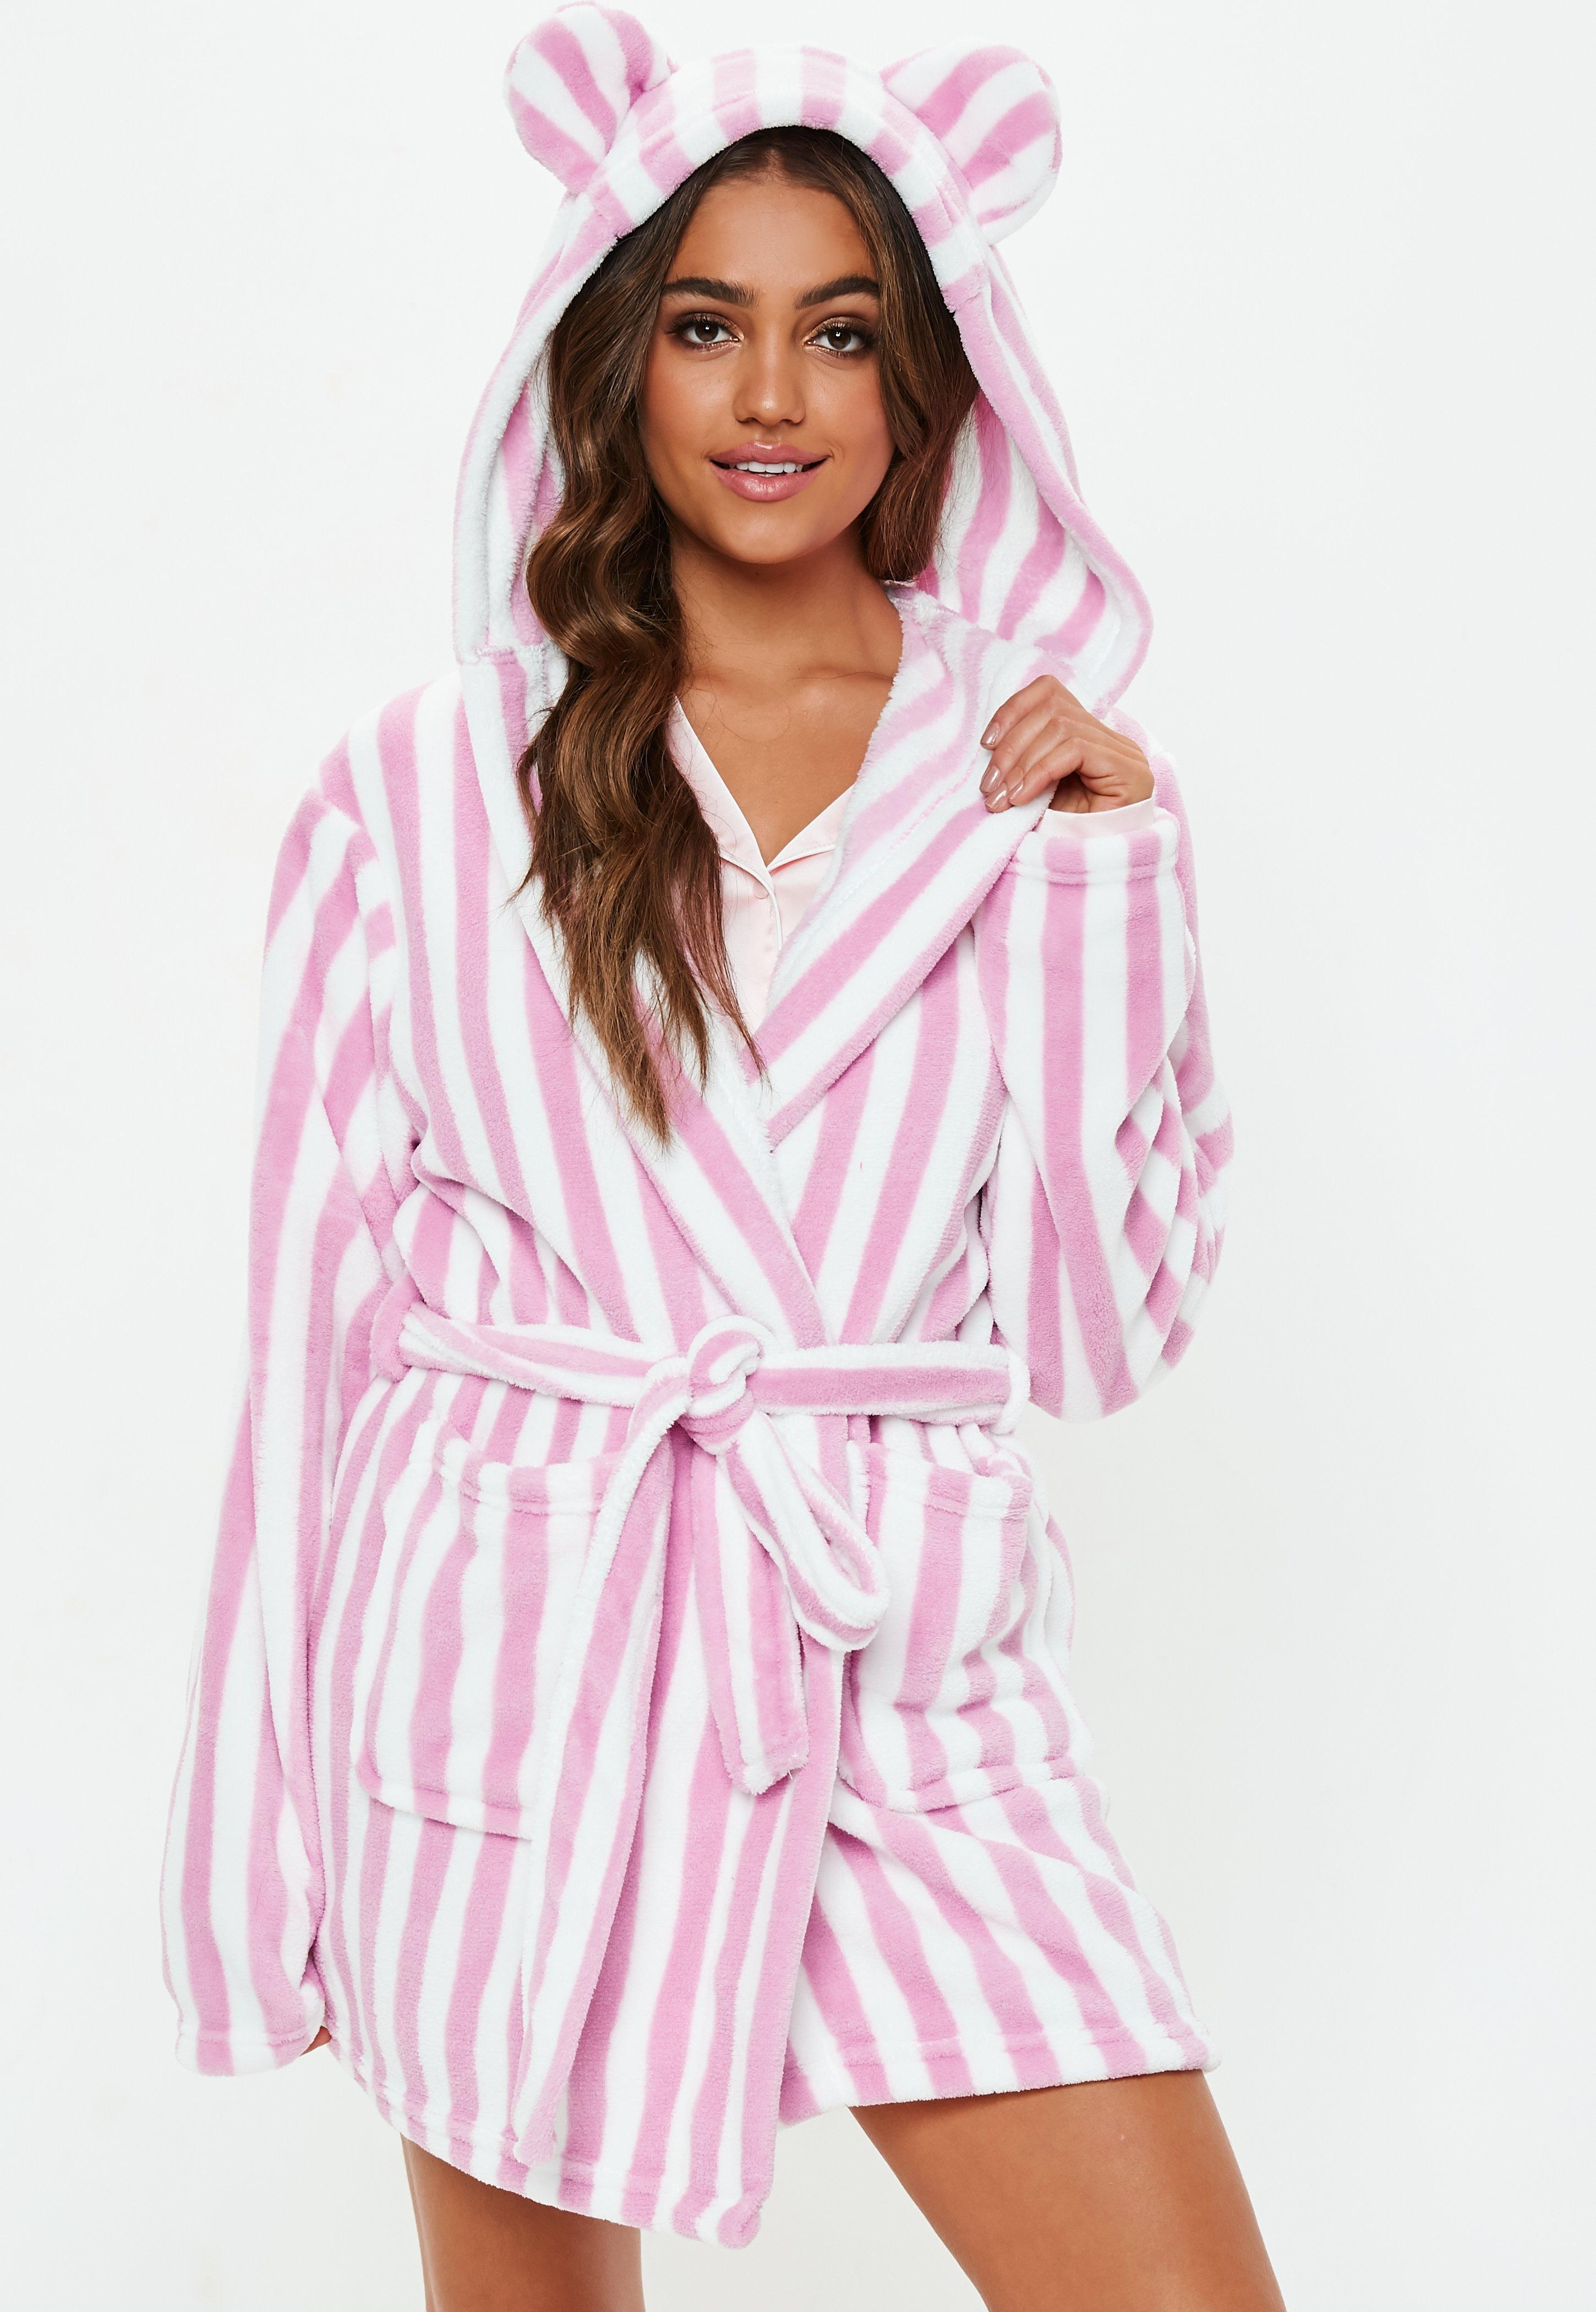 Lyst - Missguided Pink Stripe Fluffy Dressing Gown in Pink